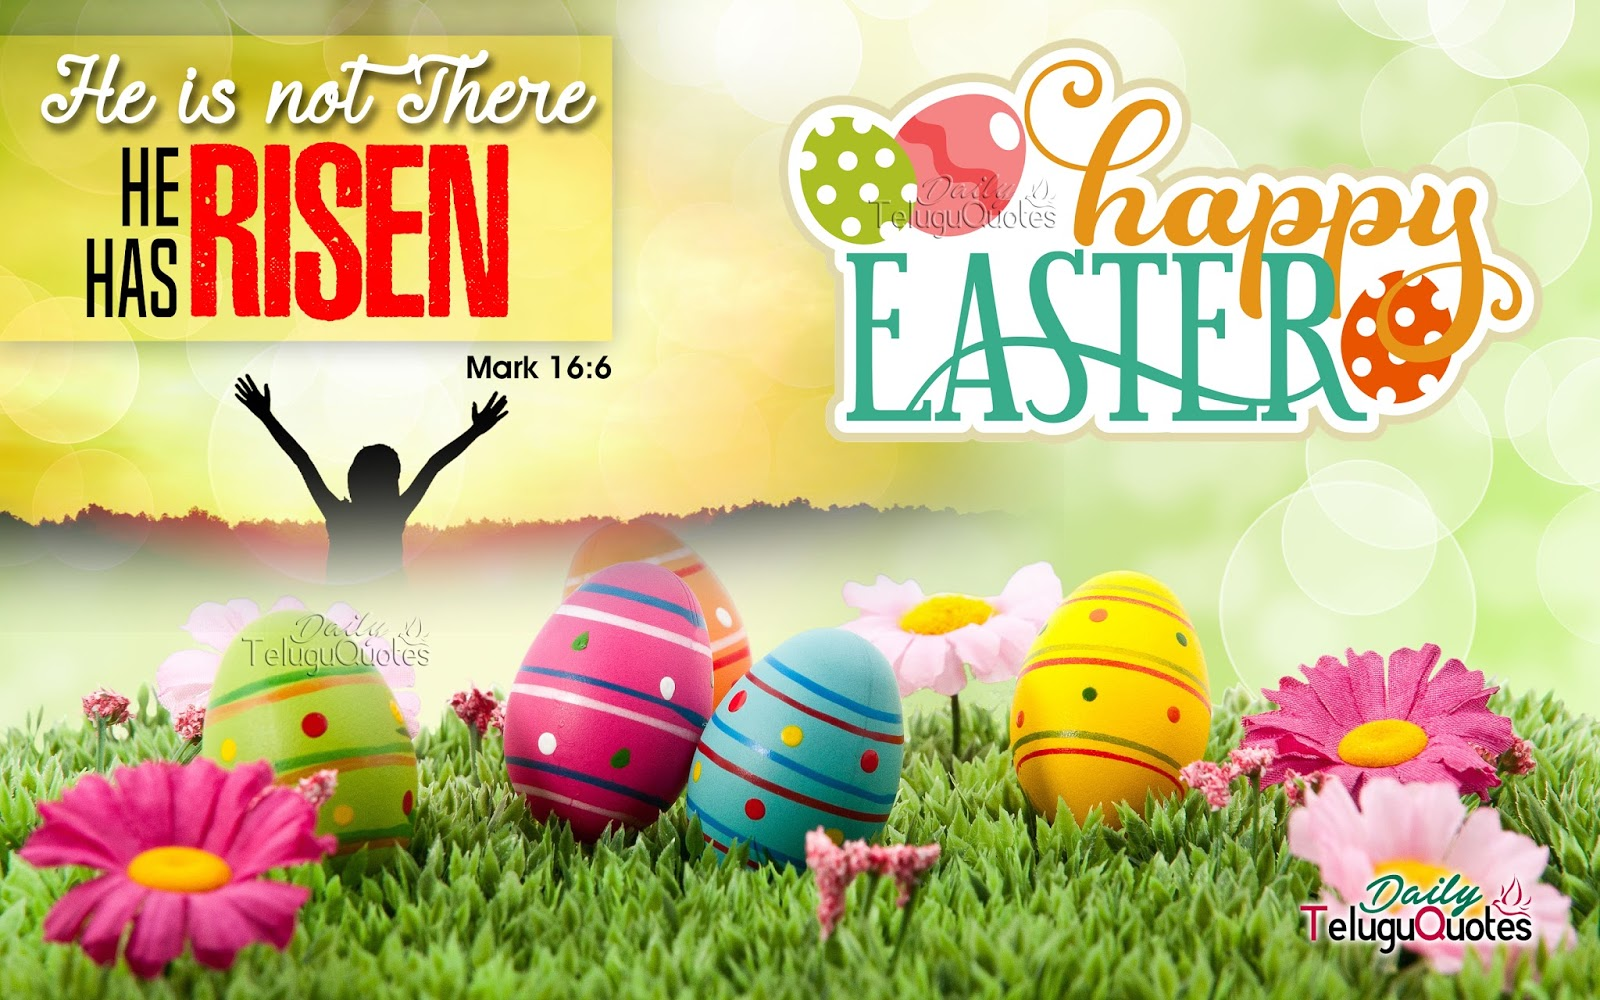 Happy Easter Greetings Quotes Wishes Hd Images Free Online